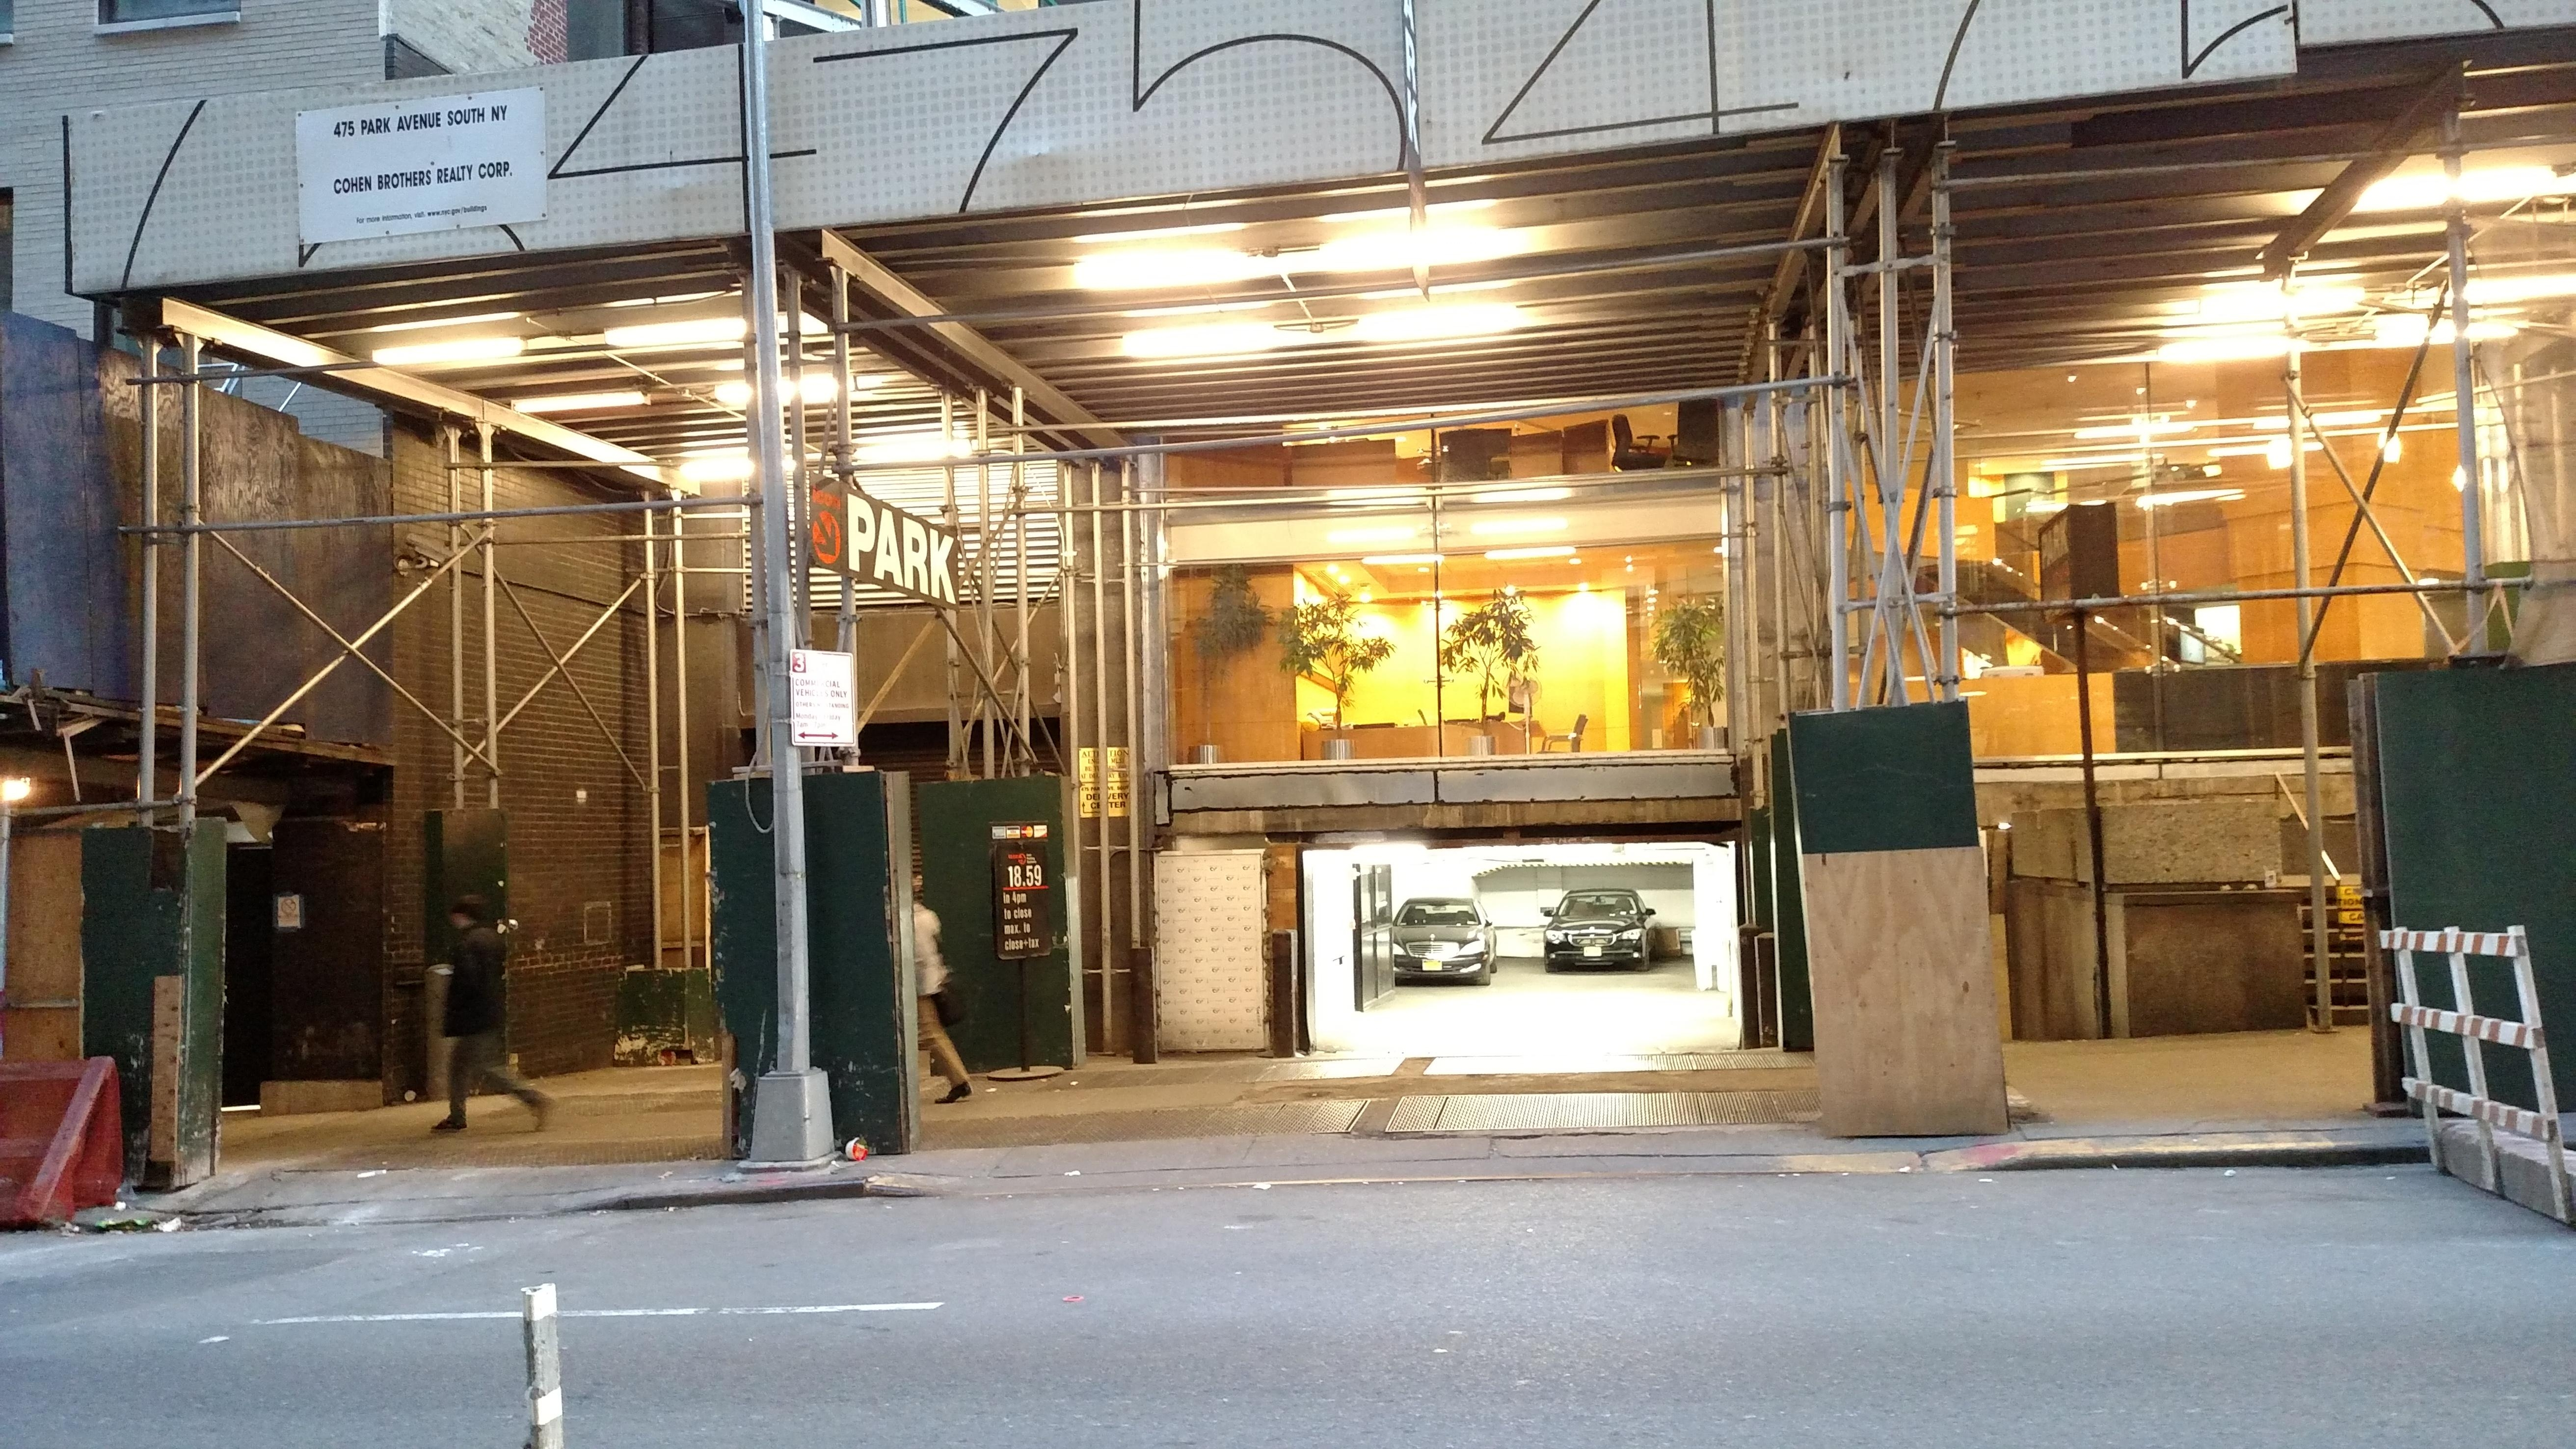 475 park ave s garage parking in new york parkme for New york city parking garage